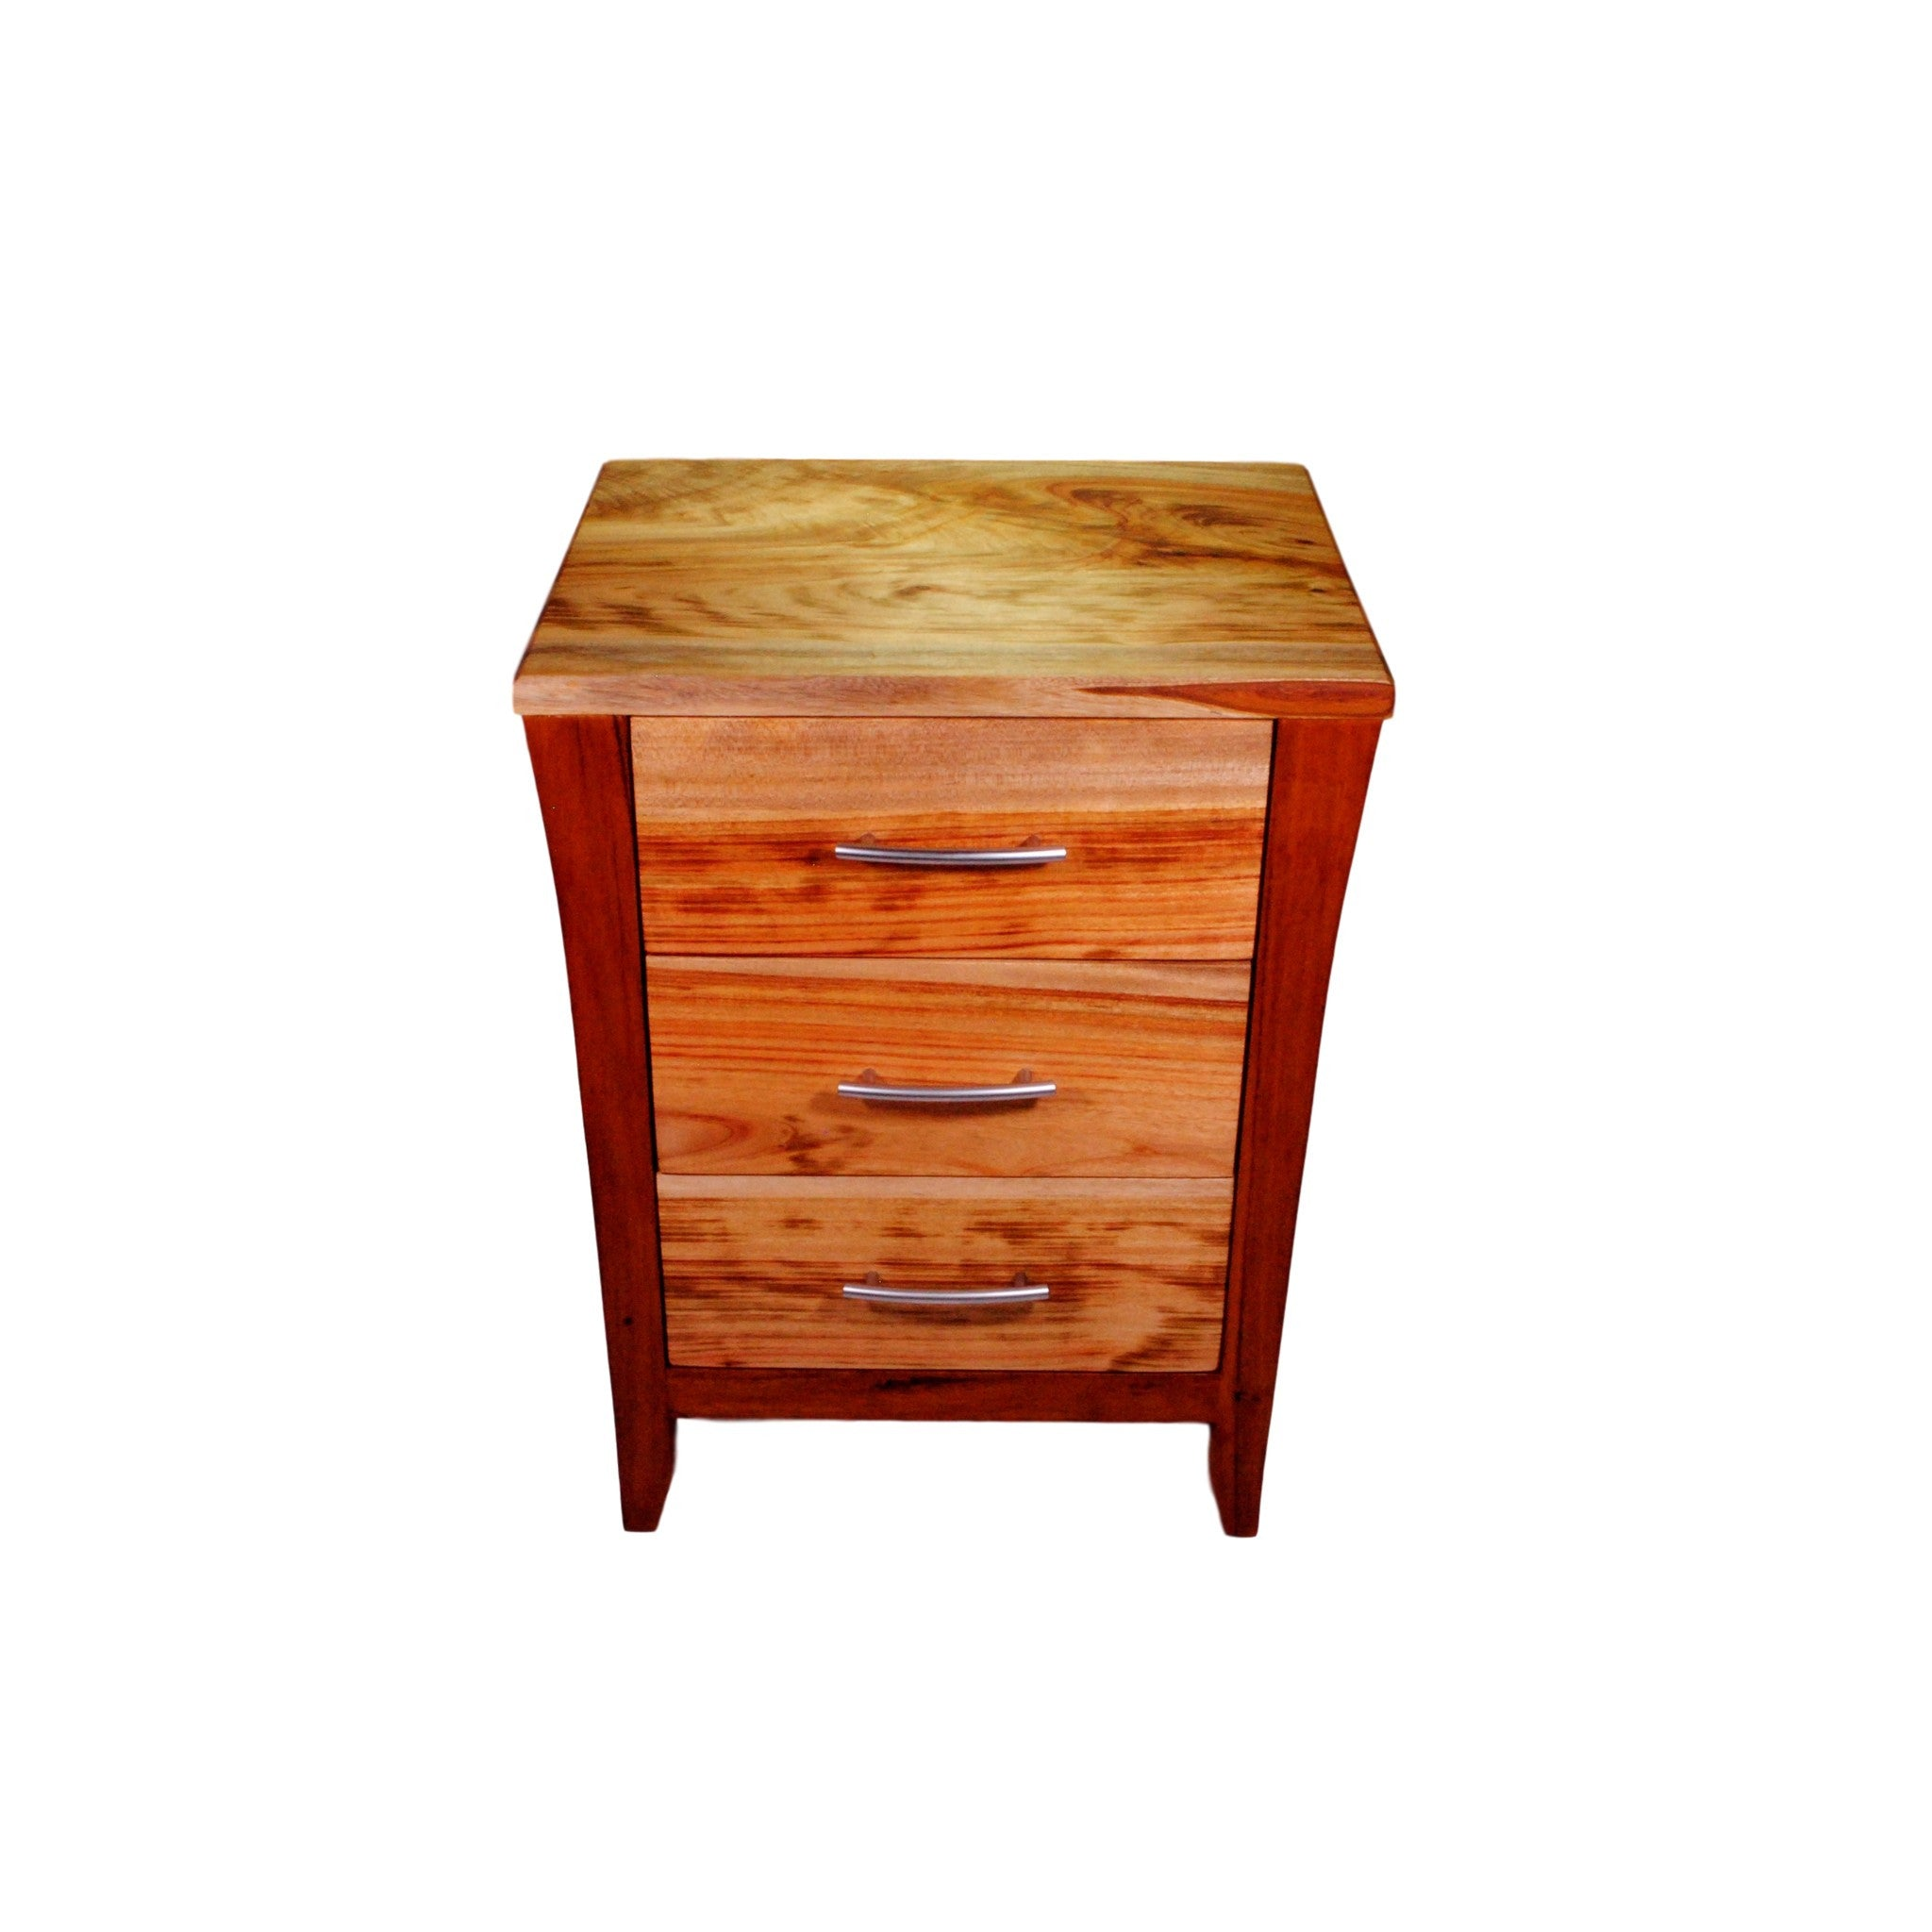 3 drawer recycled hardwood eco-friendly